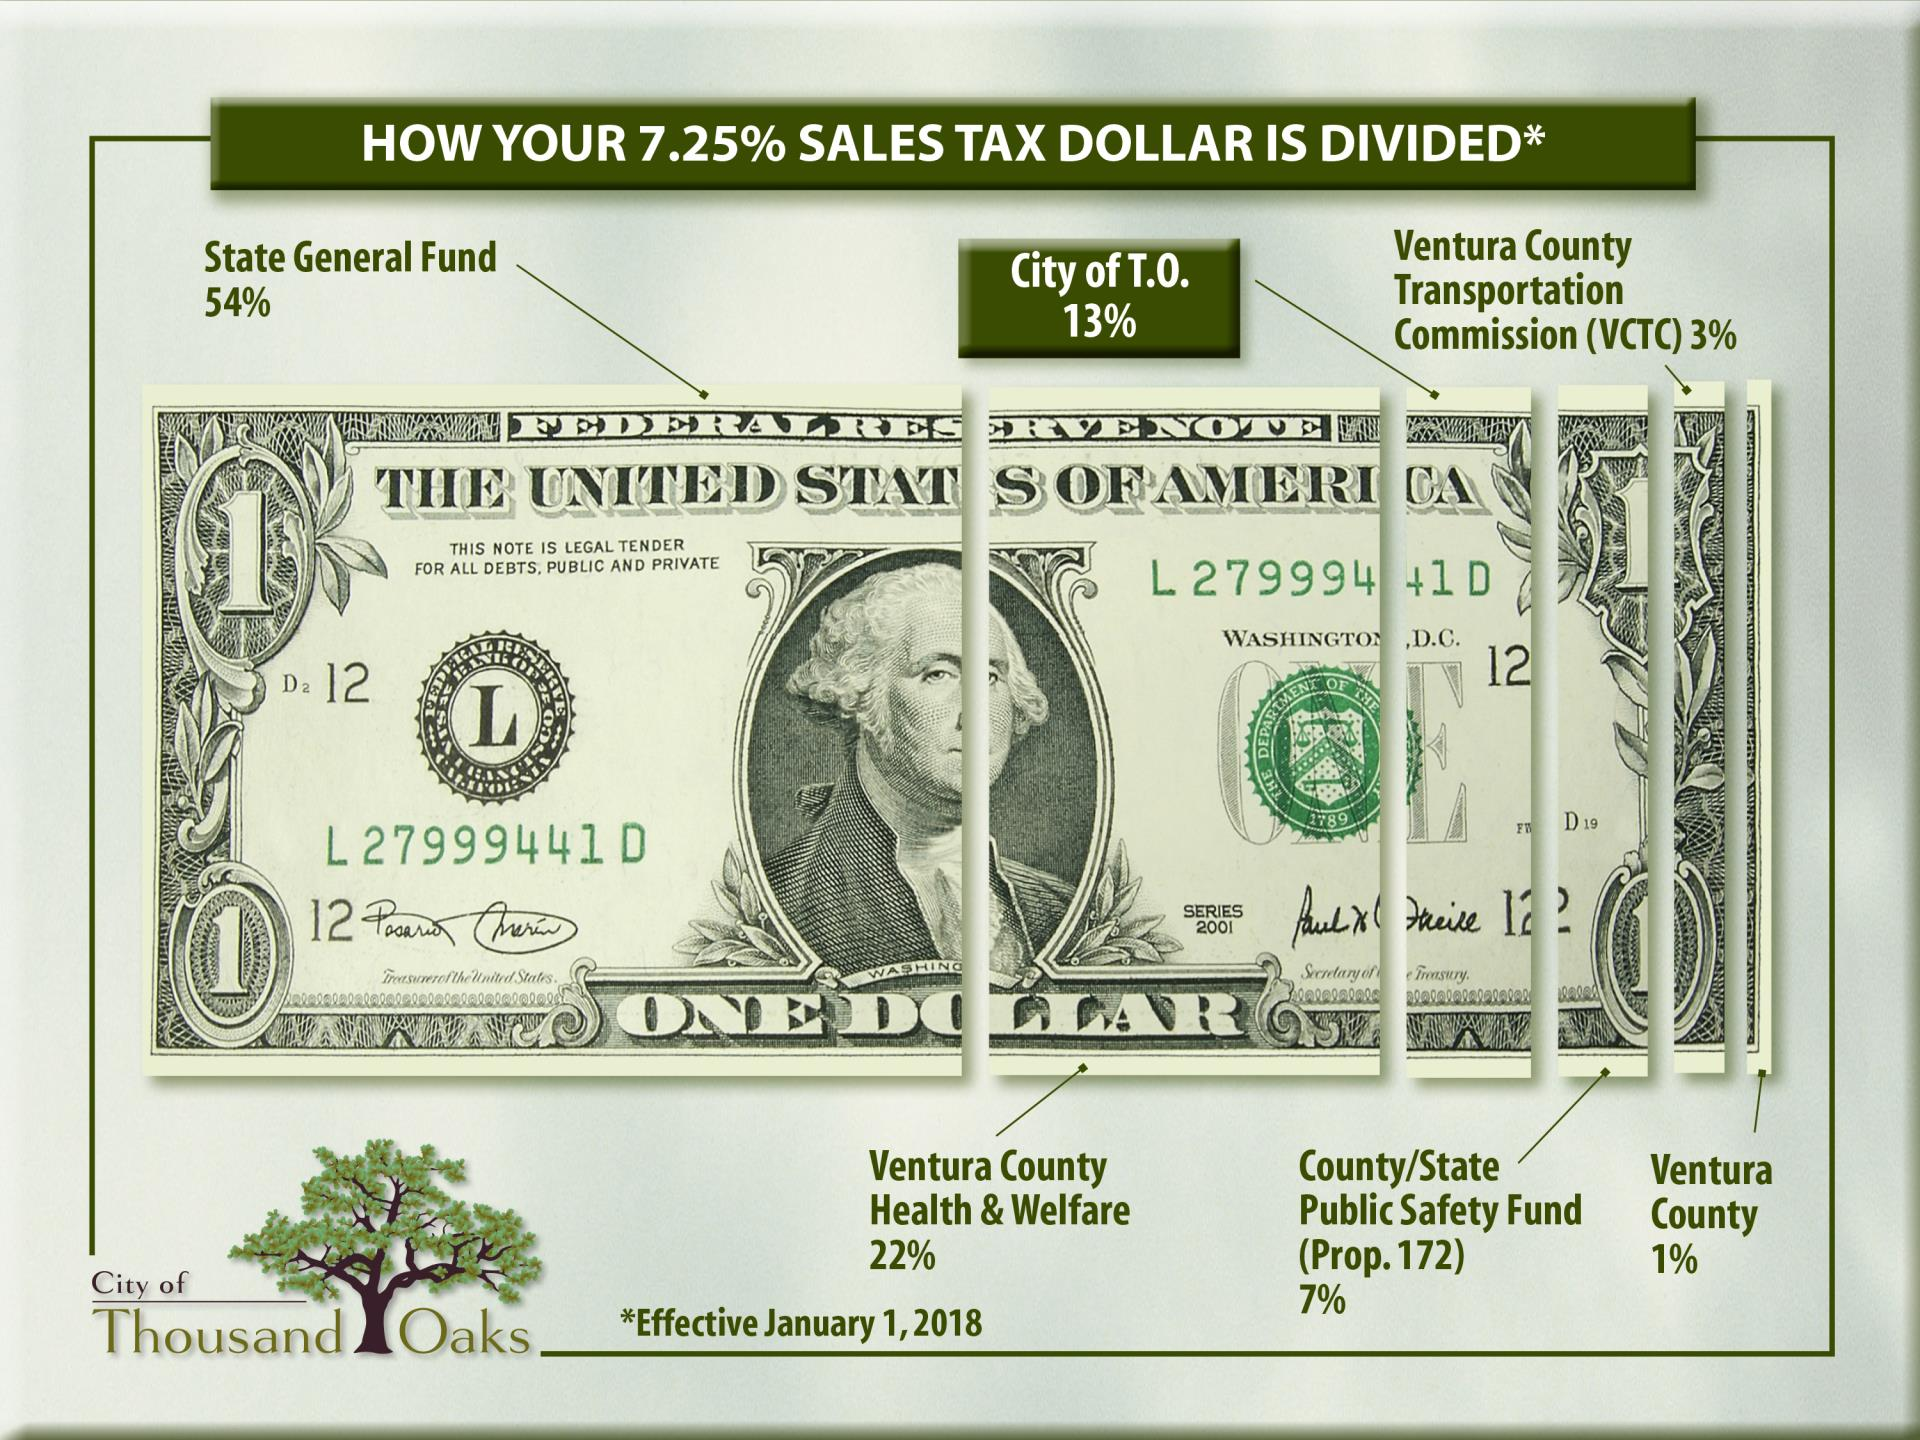 Sales Tax Dollar 2016